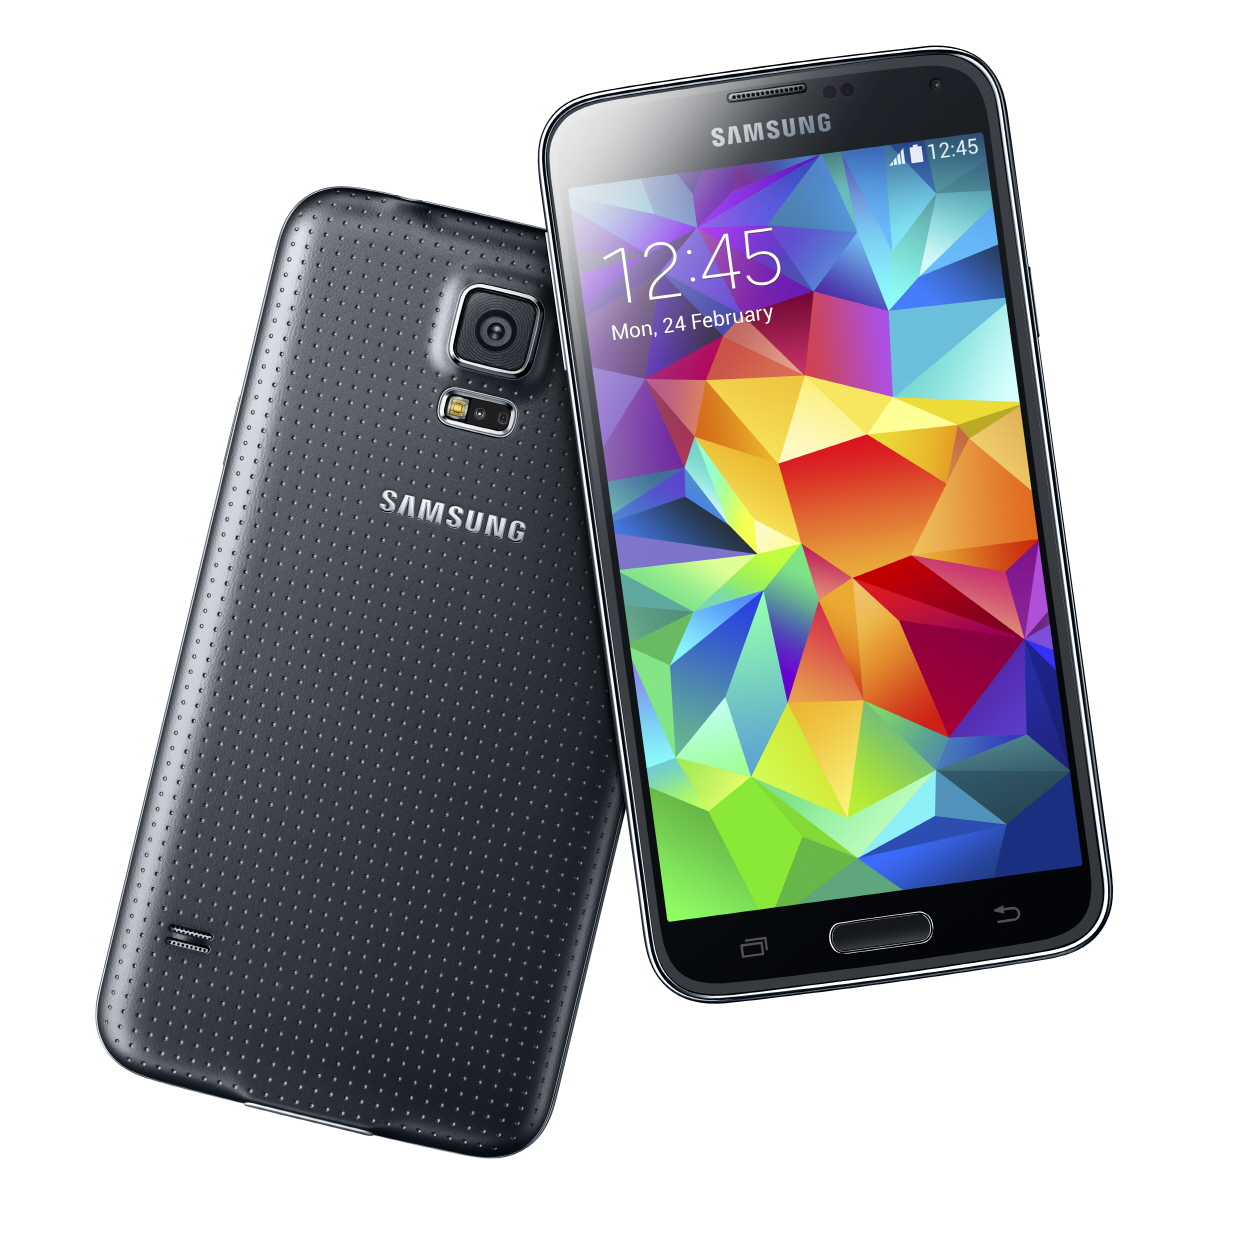 Samsung Galaxy S5 includes bundle gift pack worth of $575